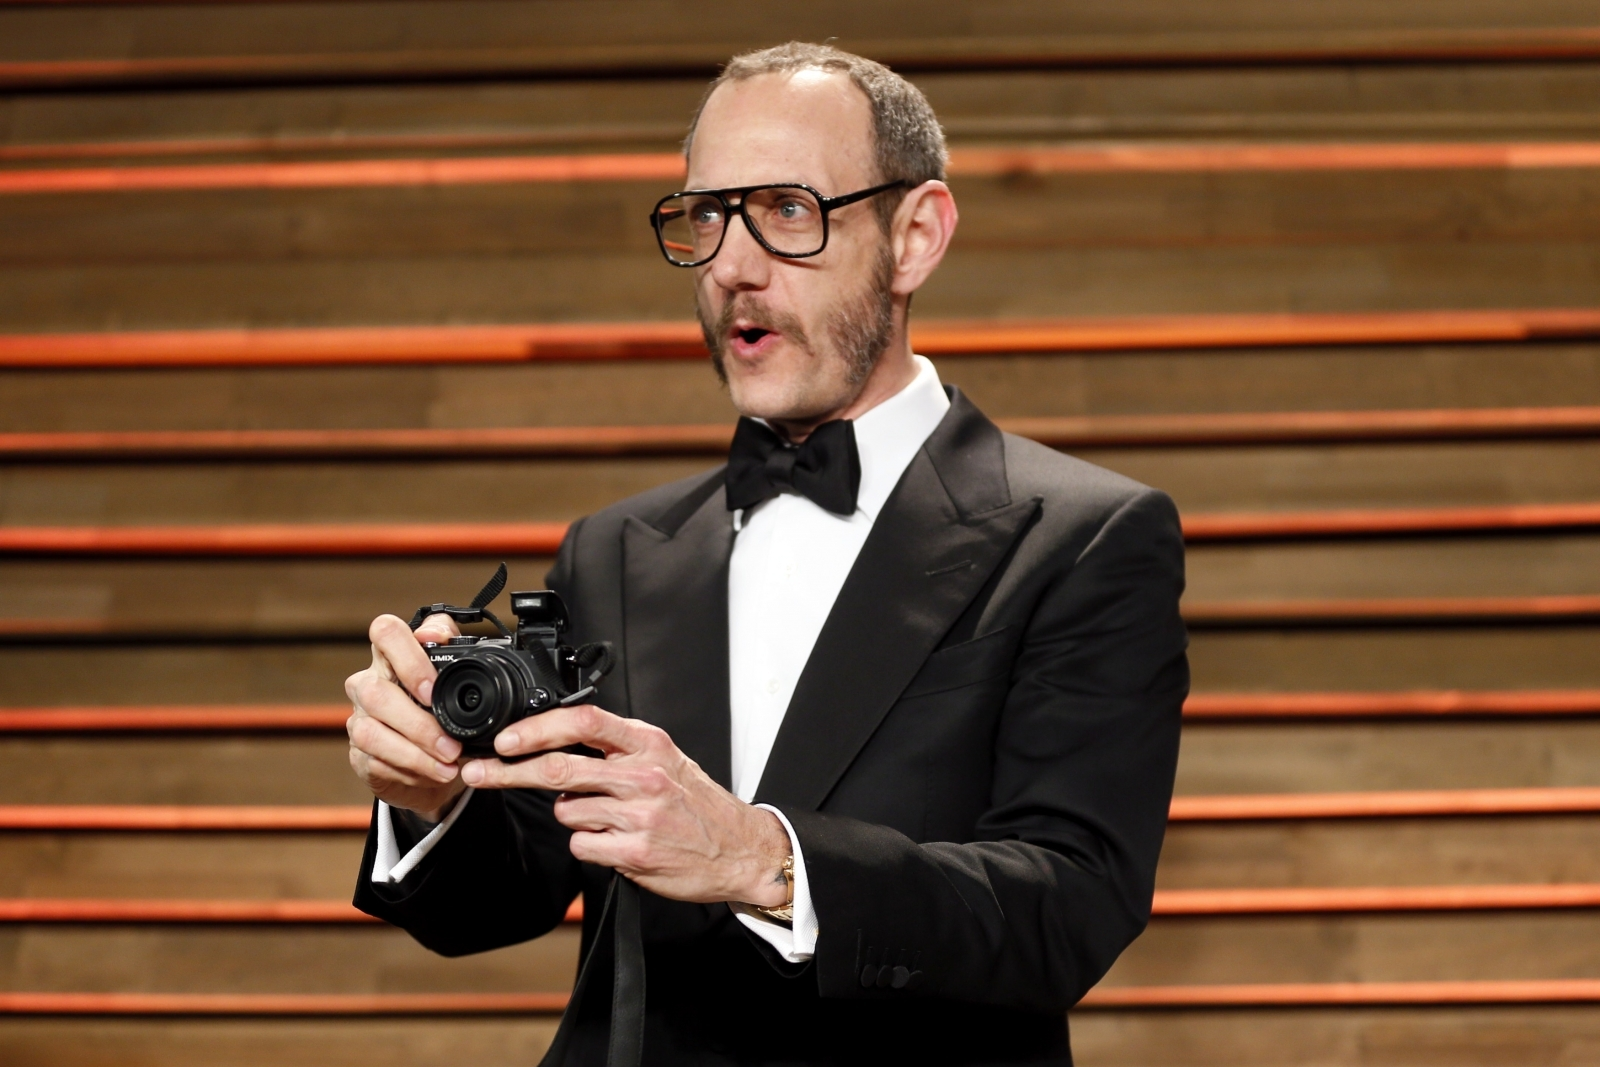 Photographer Terry Richardson dropped by Condé Nast amid abuse allegations